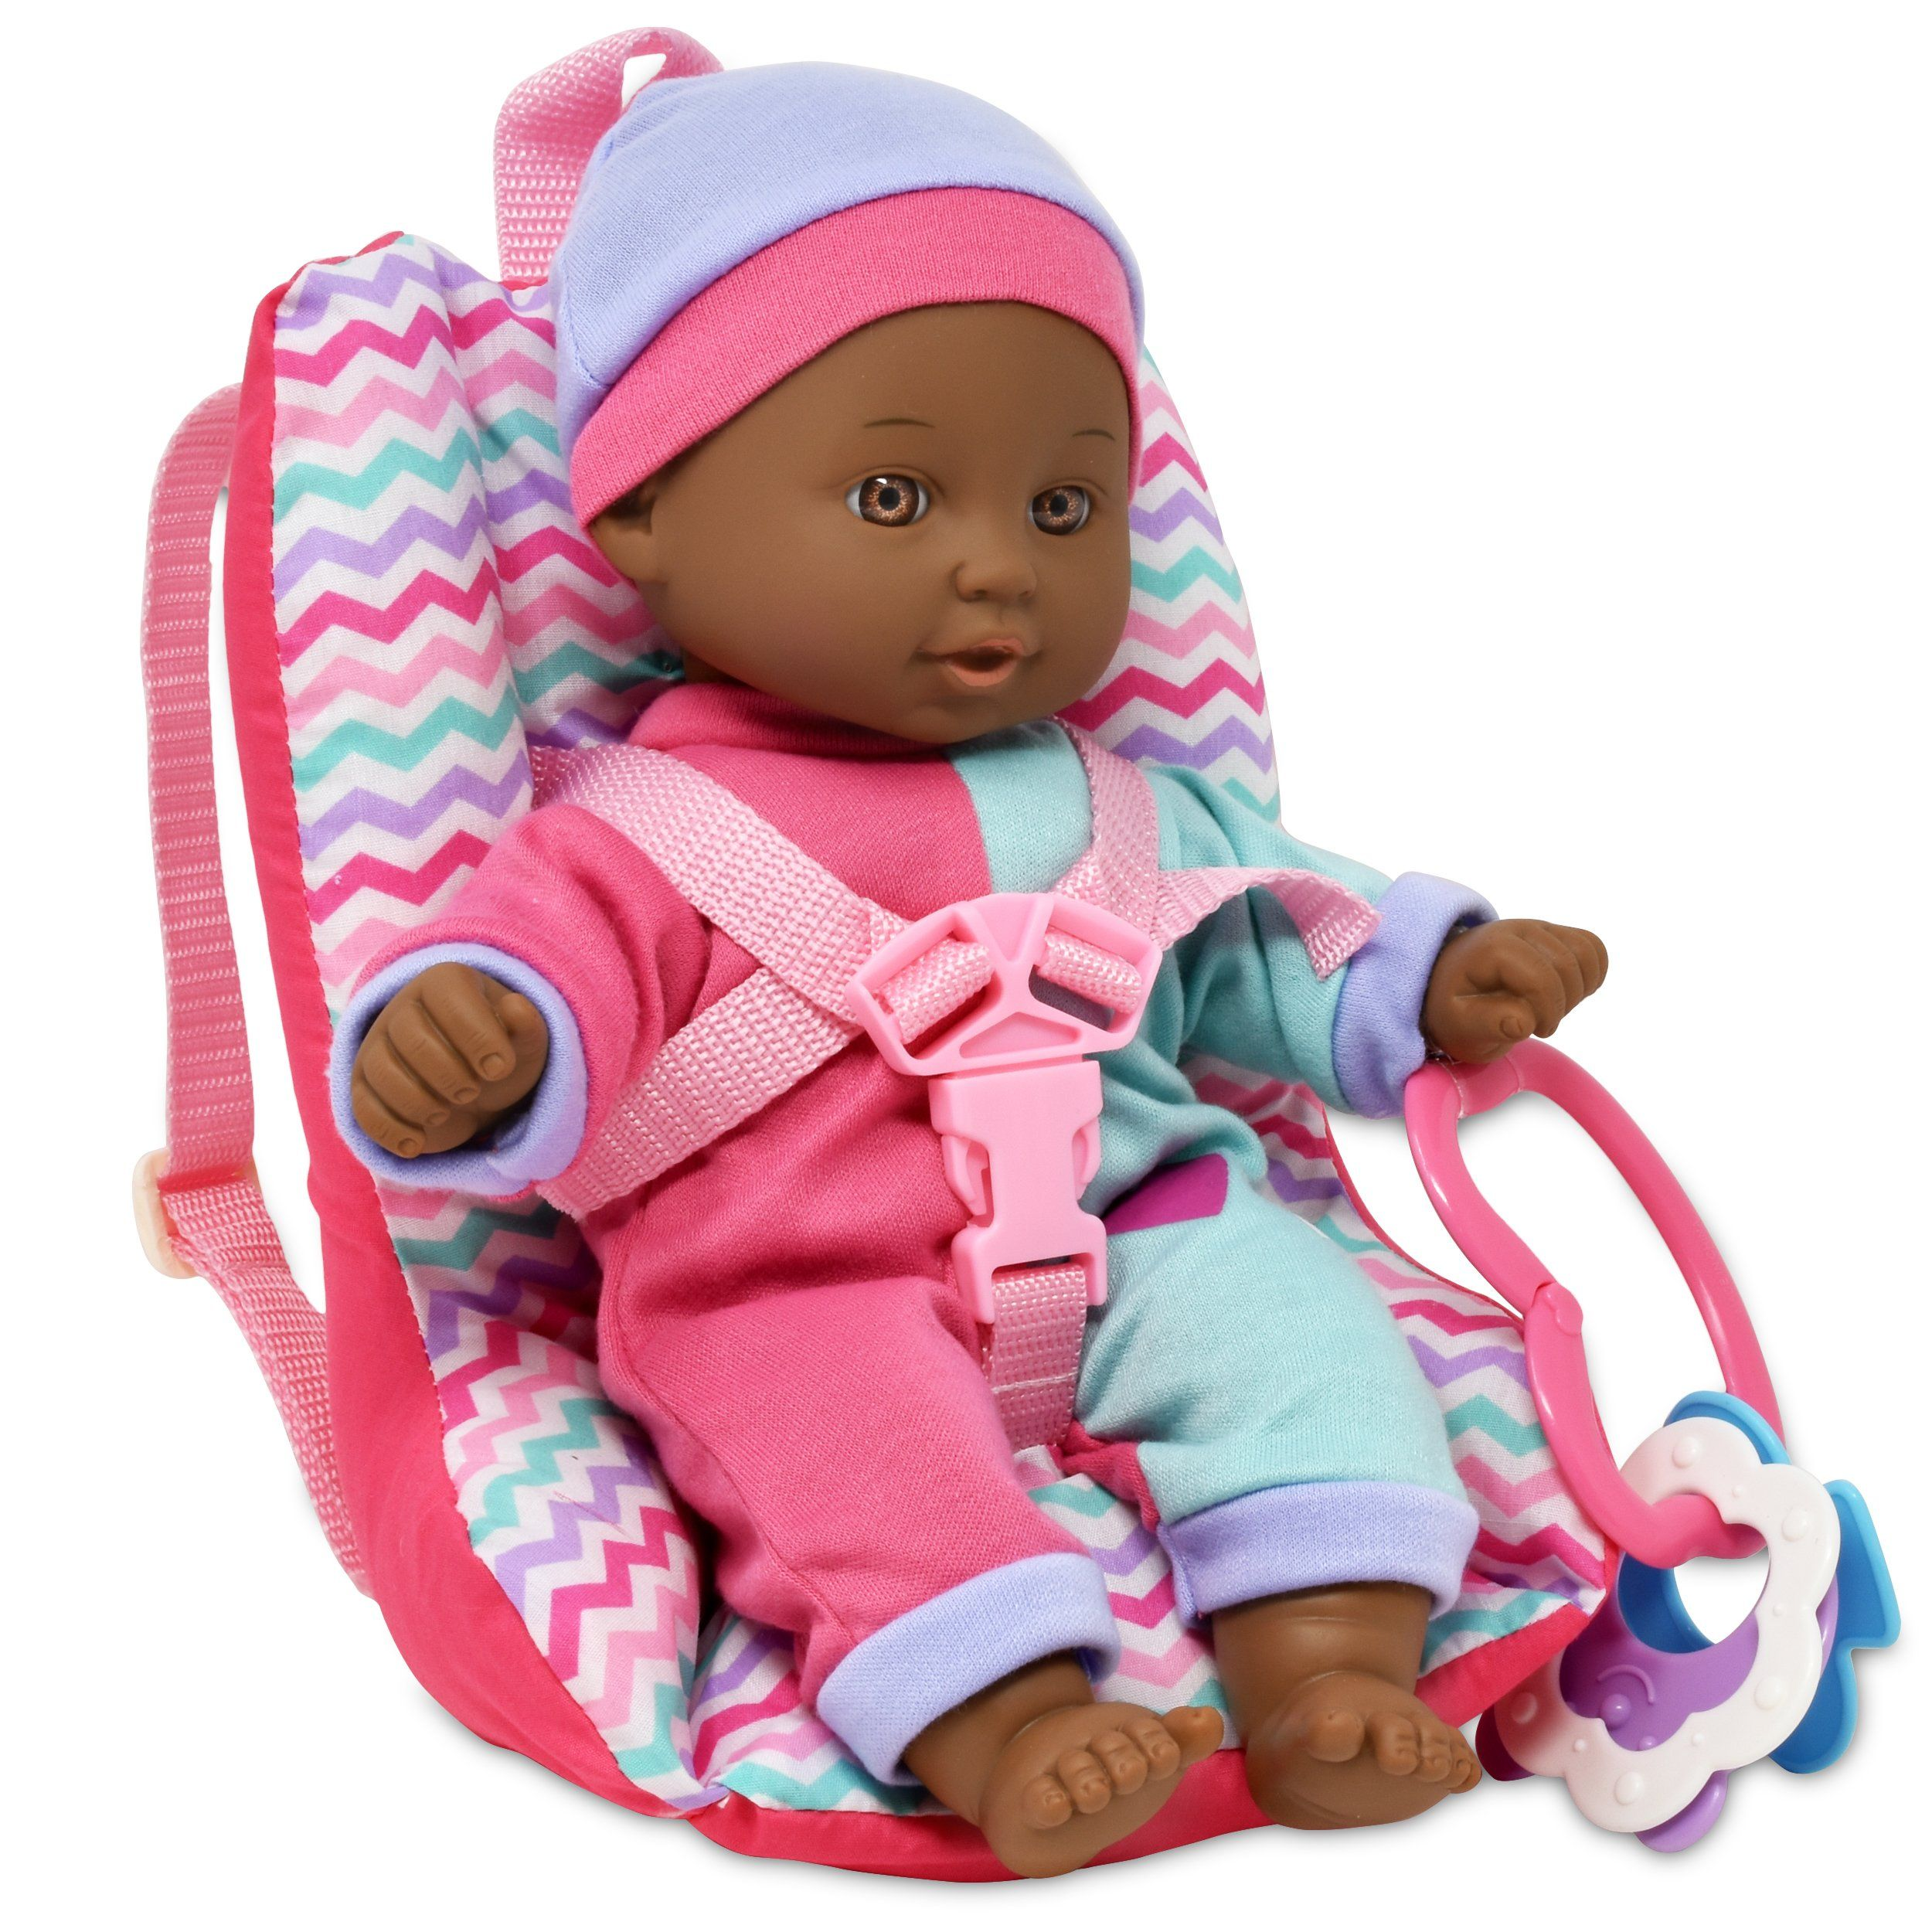 Baby Doll Car Seat With Toy Accessories Includes 12 Inch Soft Body Doll Booster Seat Carrier Diaper Bag With Ratt Baby Doll Car Seat Travel Gift Set Baby Dolls